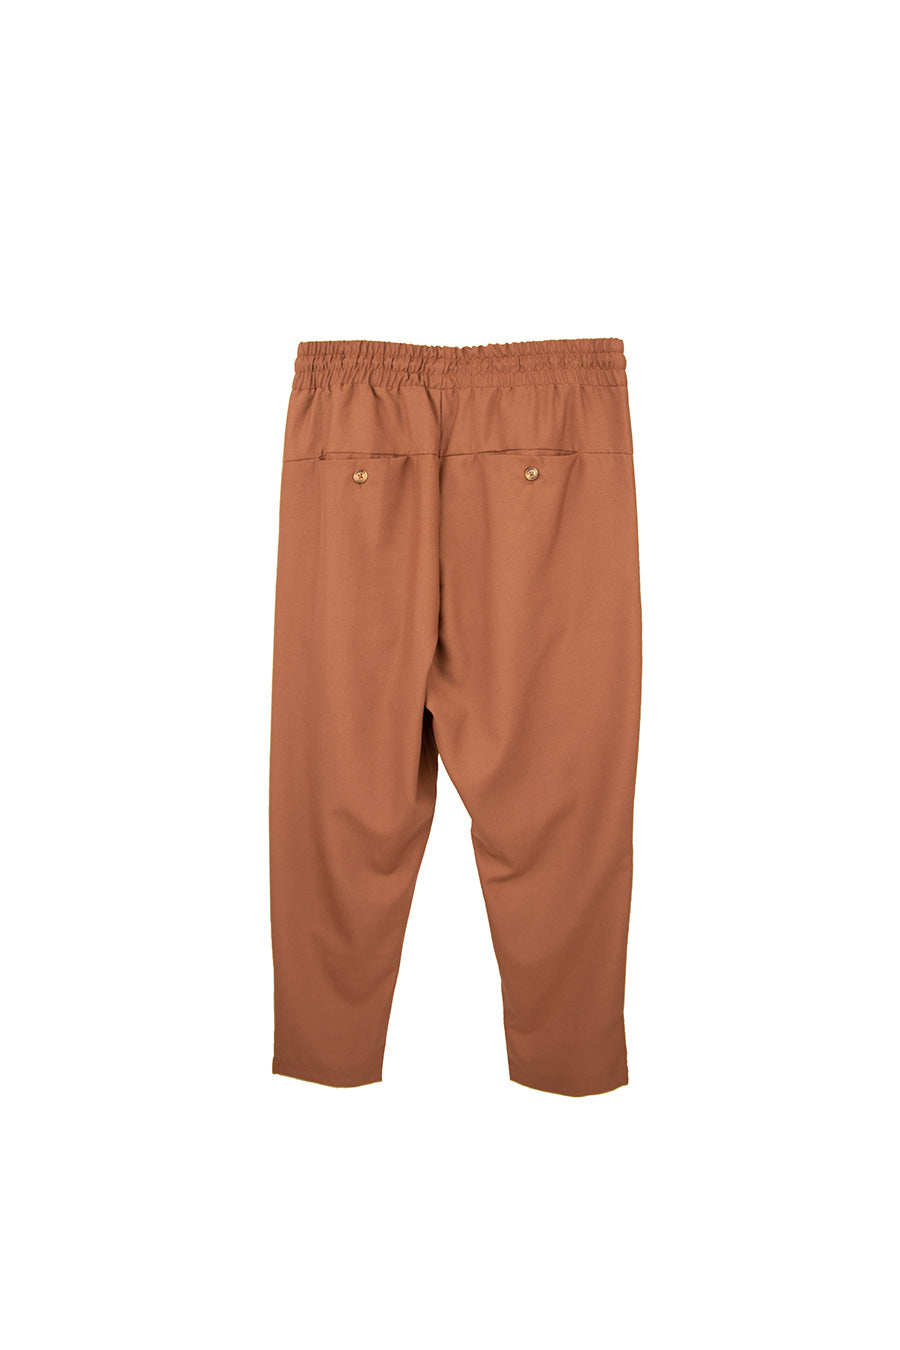 Drôle De Monsieur - Brown Wool Cropped Pants | 1032 SPACE